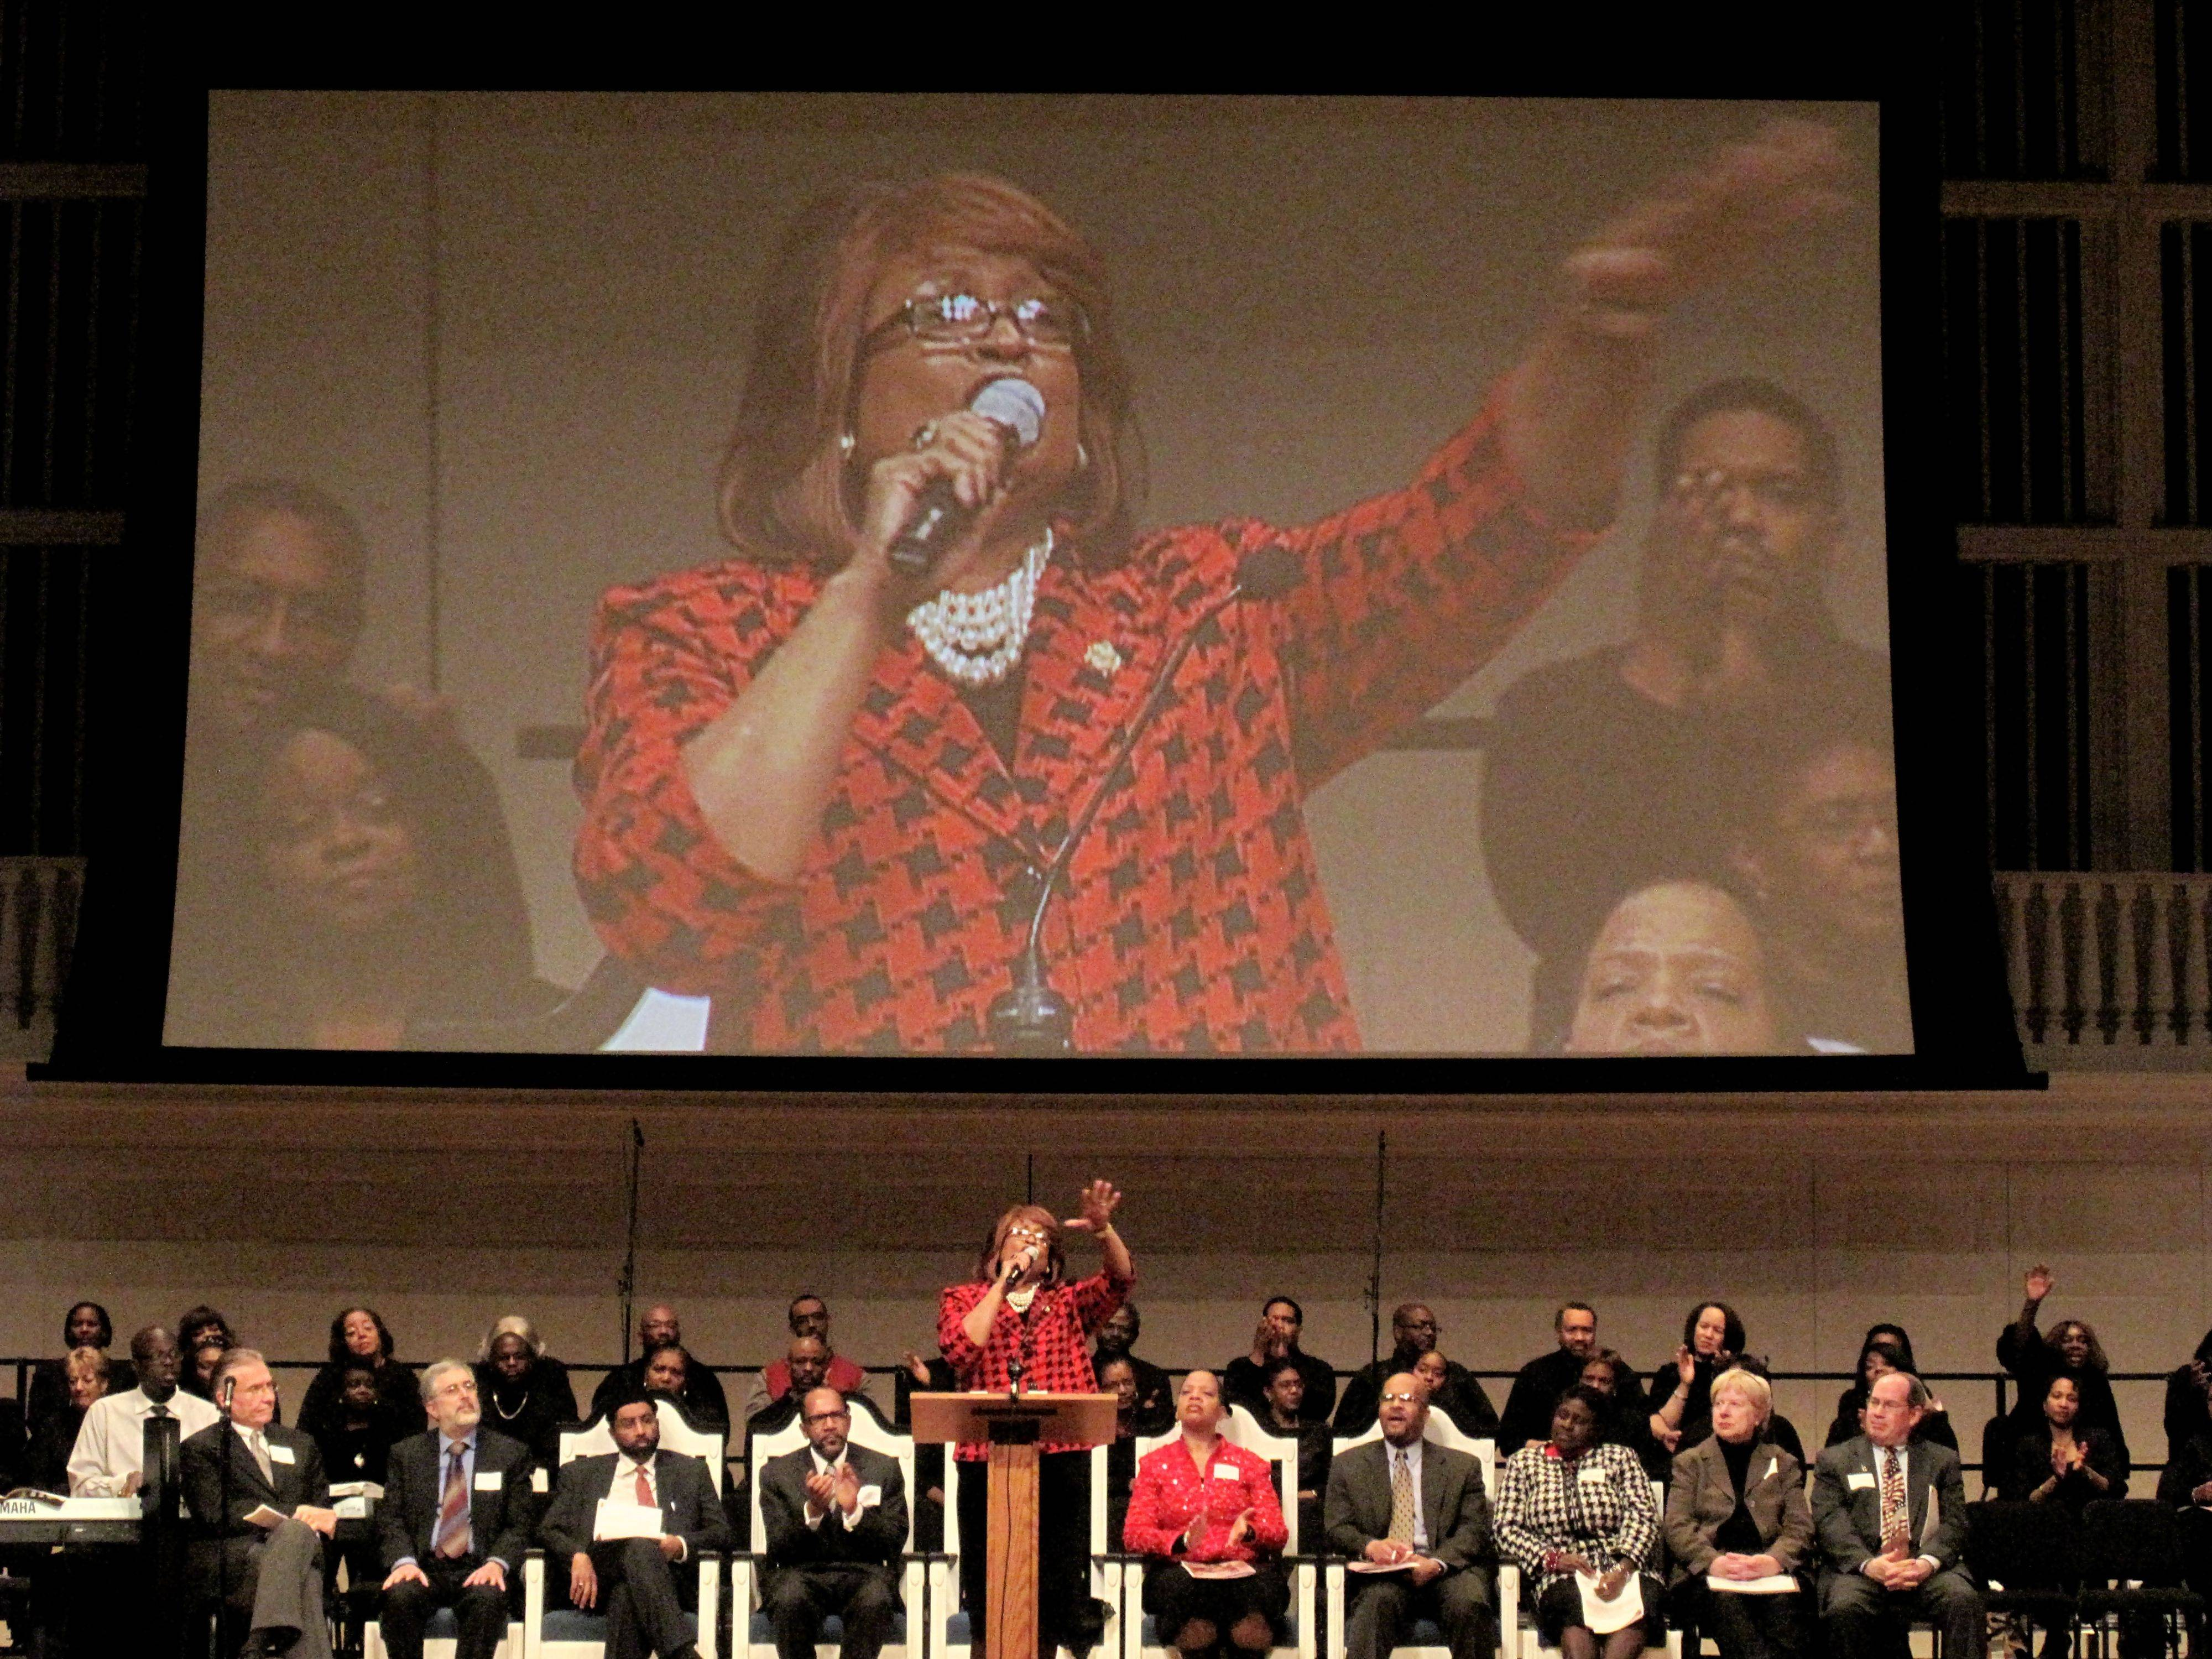 African Methodist Episcopal Church's first female bishop, Vashti Murphy McKenzie, speaks to the crowd during DuPage County's 21st celebration of Dr. Martin Luther King Jr. Day at Edman Memorial Chapel in Wheaton. McKenzie's message promoted unity and continuing Dr. King's dream.